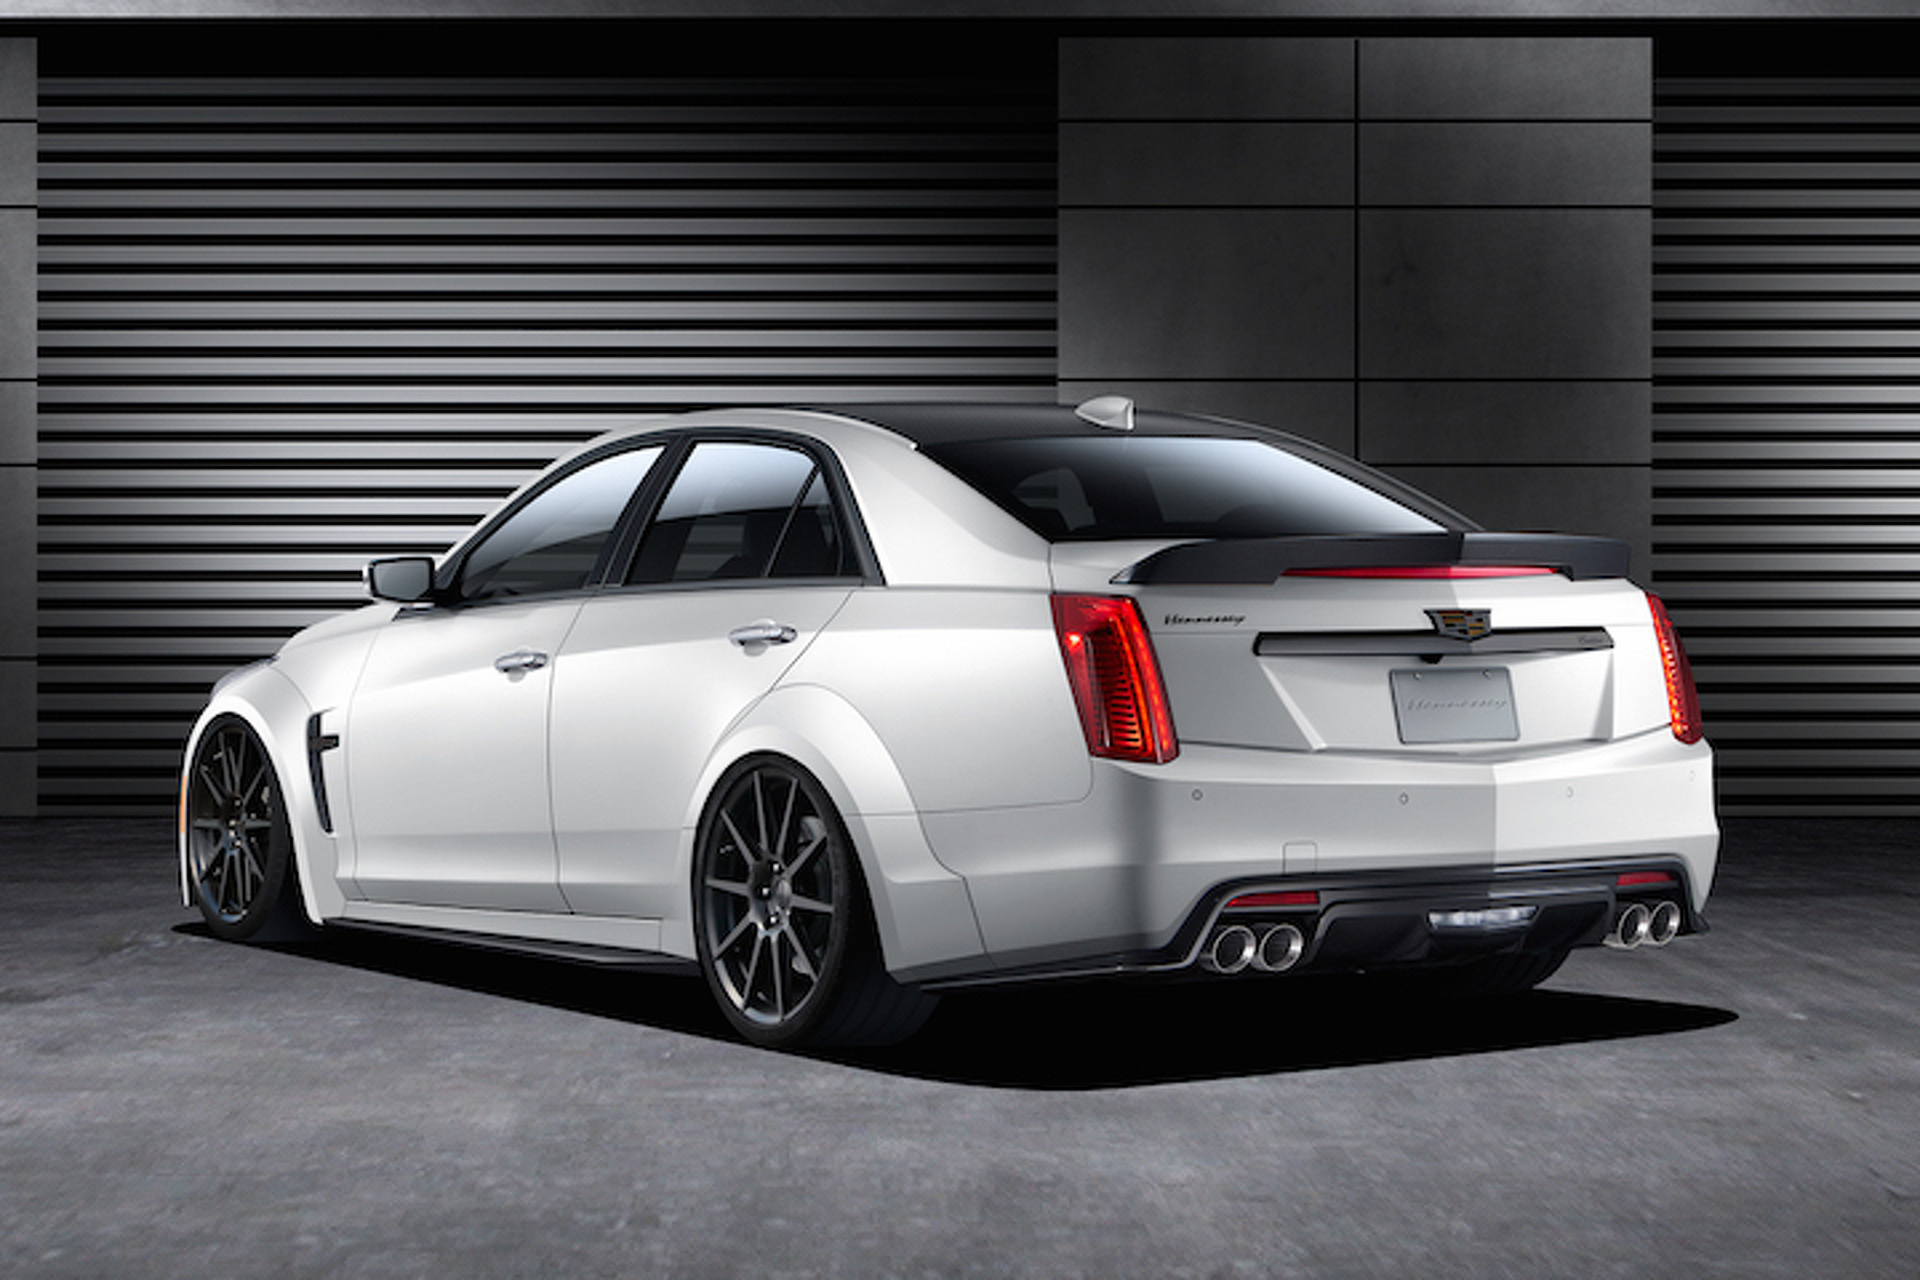 Hennessey Just Unleashed a 1,000HP Cadillac CTS-V Monster